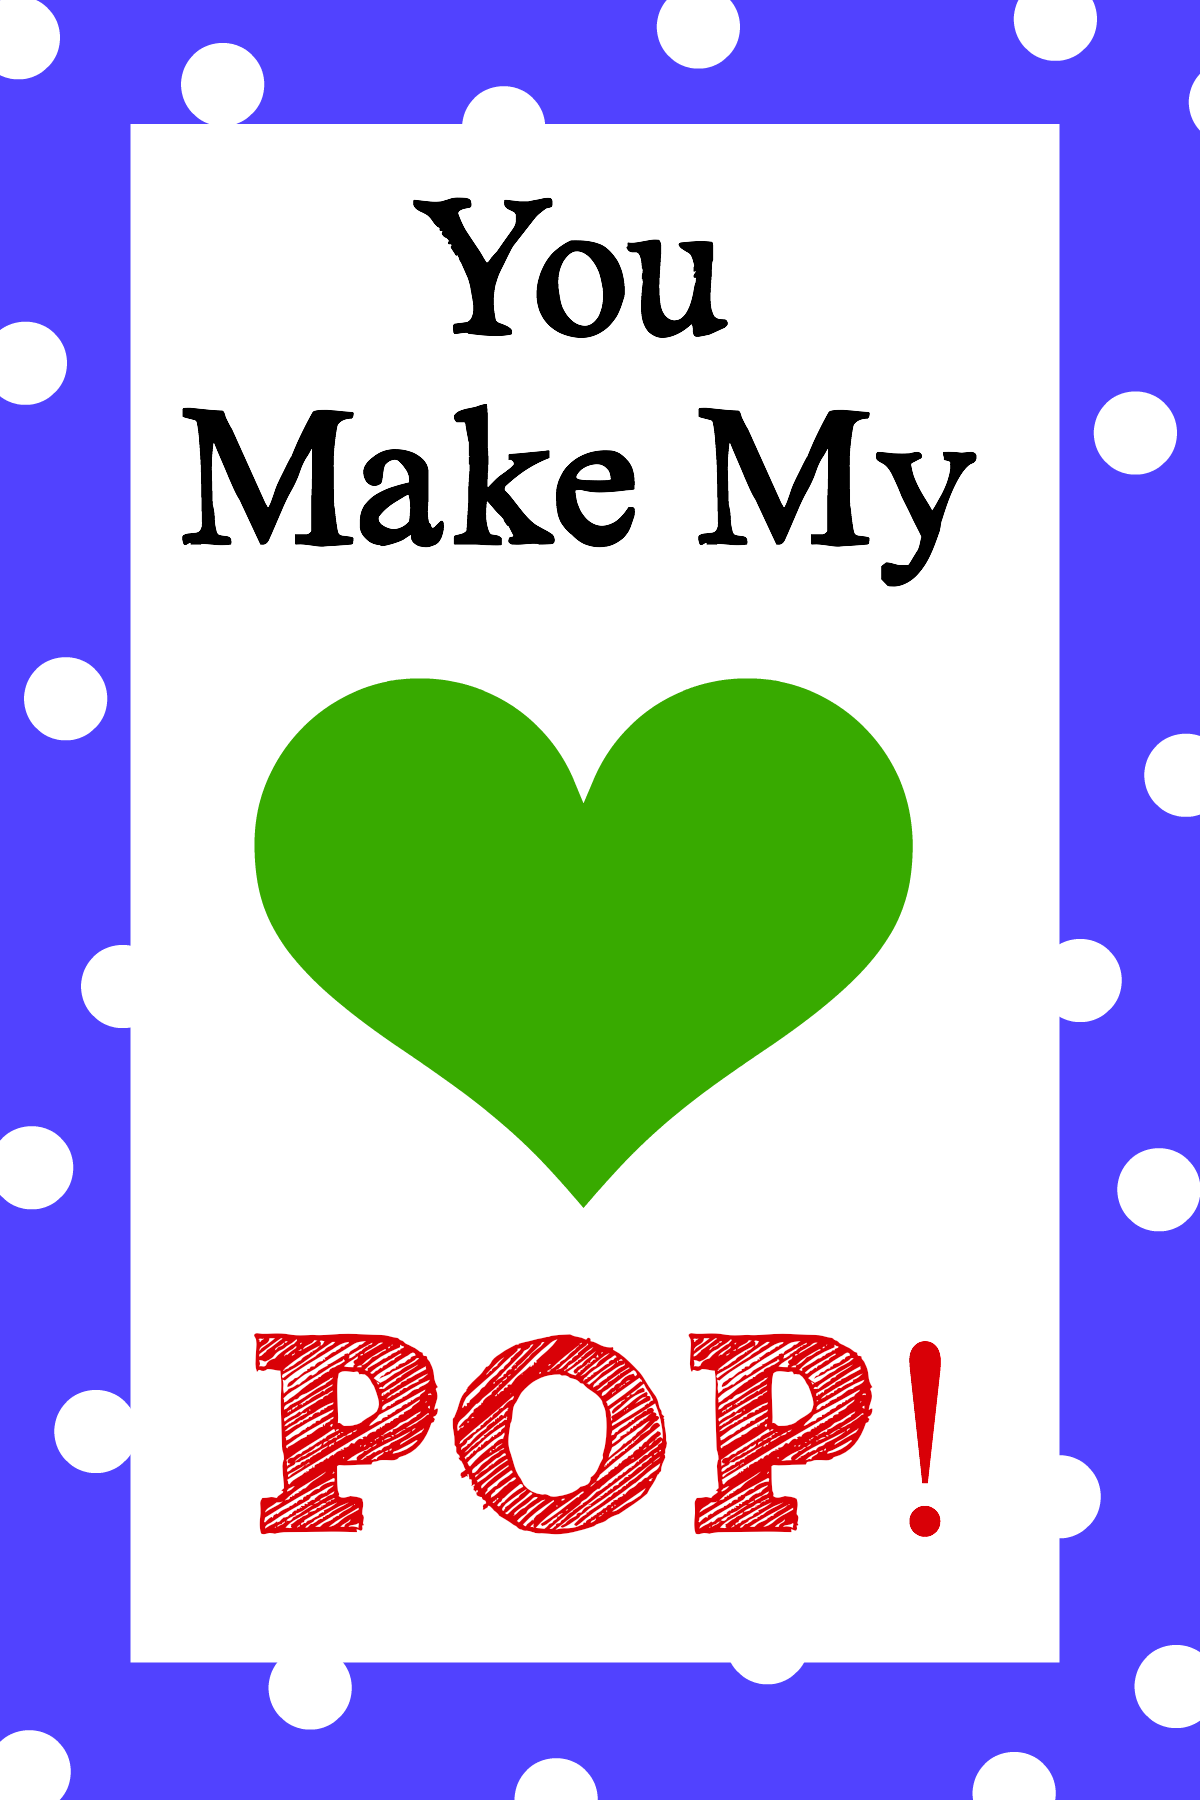 photograph about Printable Valentine Craft named By yourself Create My Center Pop! Valentines Strategy - Insane Very little Initiatives